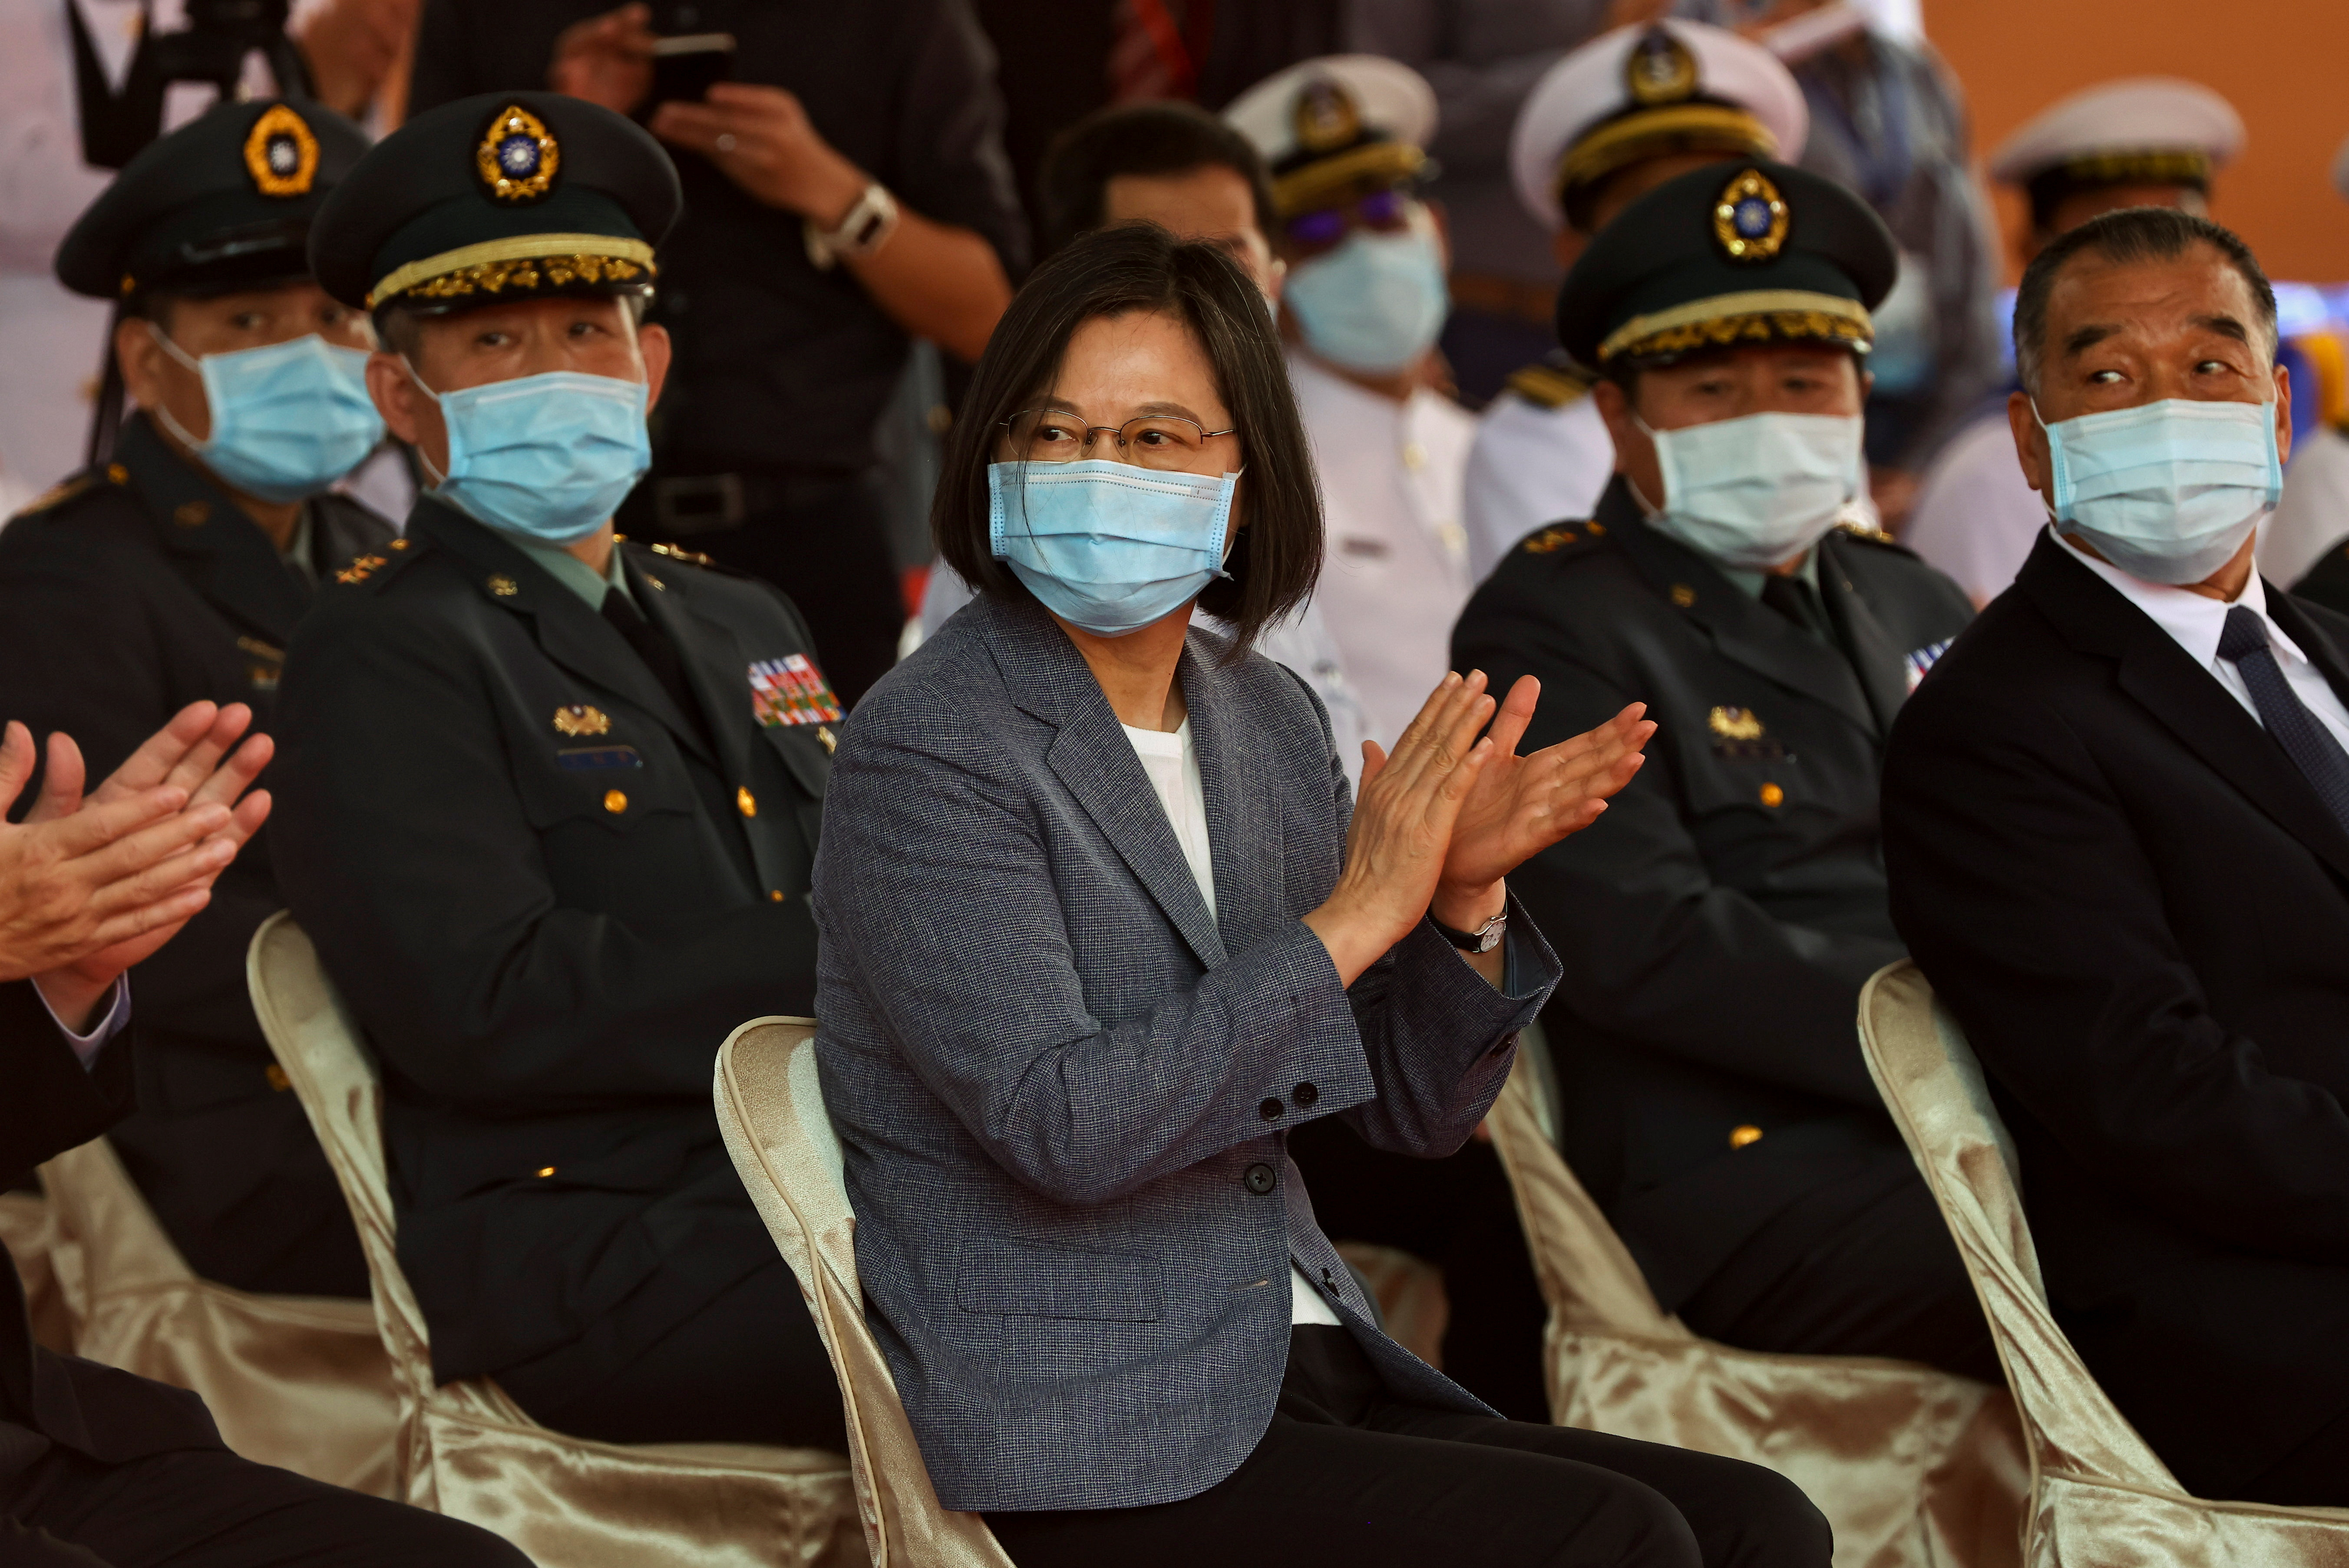 Taiwan's President Tsai Ing-wen applauds during the launch ceremony for Taiwan Navy's domestically built amphibious transport dock